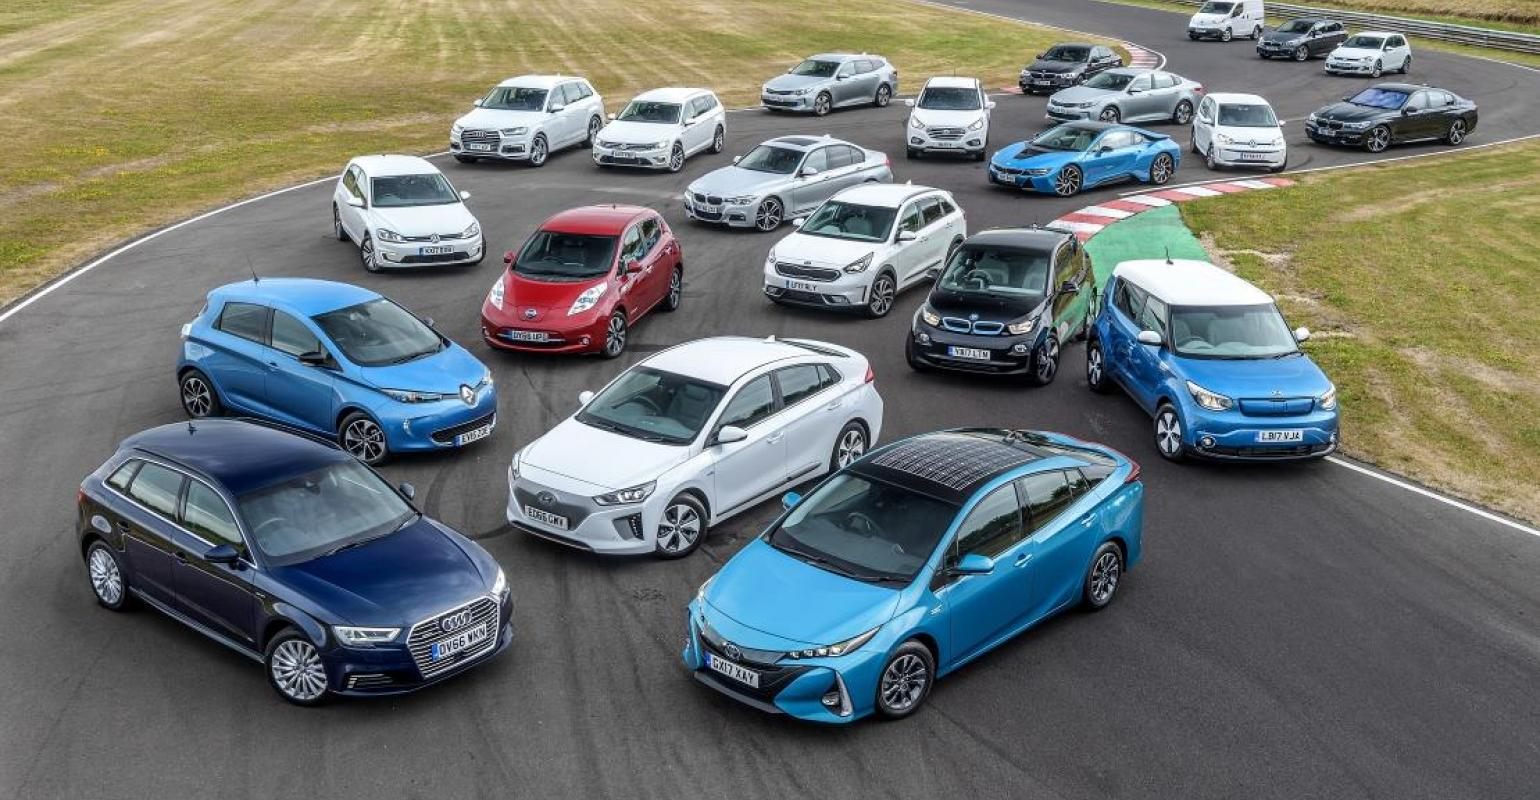 Electric Vehicles Set U K S Records In 2017